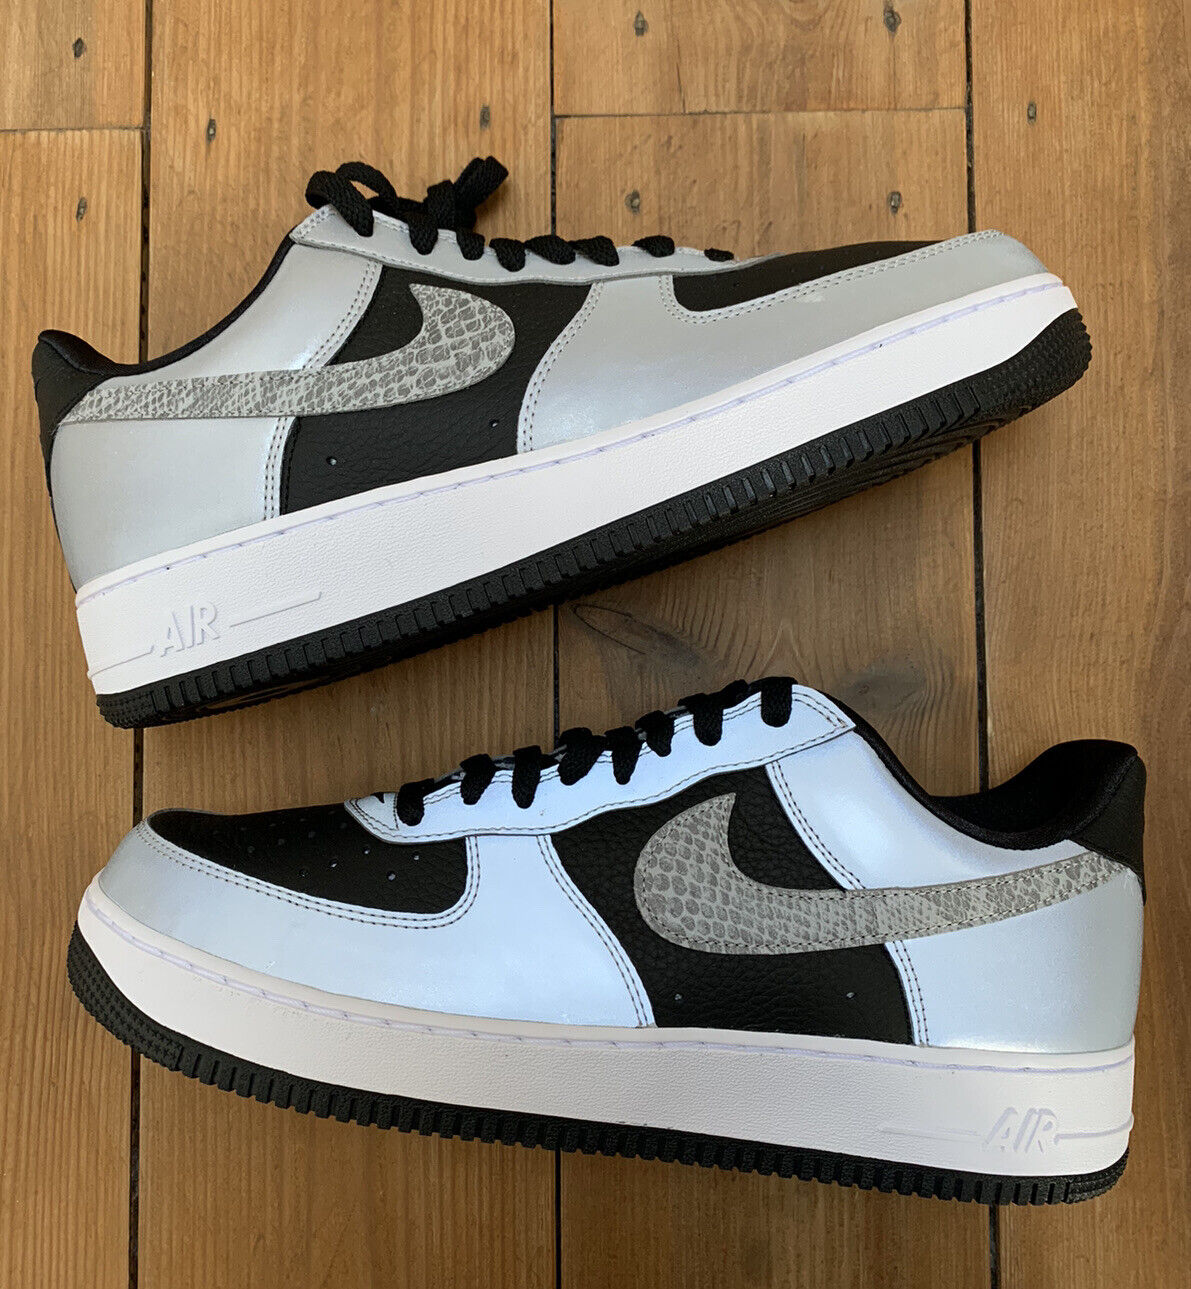 Nike Air Force 1 Low Silver SNAKE UK11 US12 FREE DELIVERY